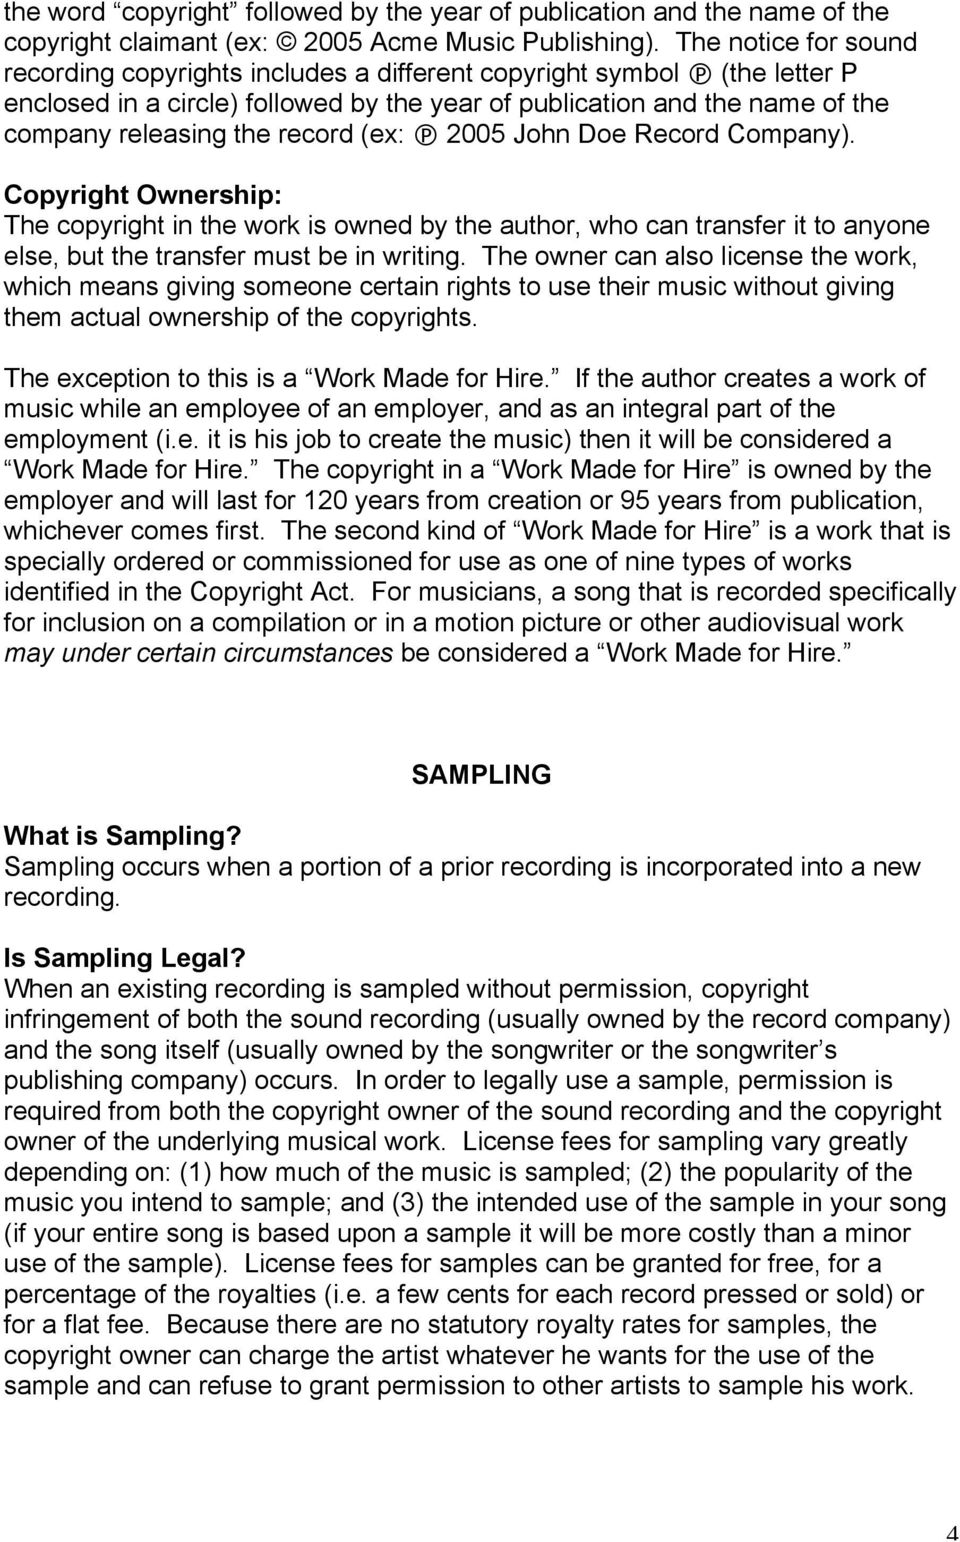 Legal Issues Involved In The Music Industry Pdf